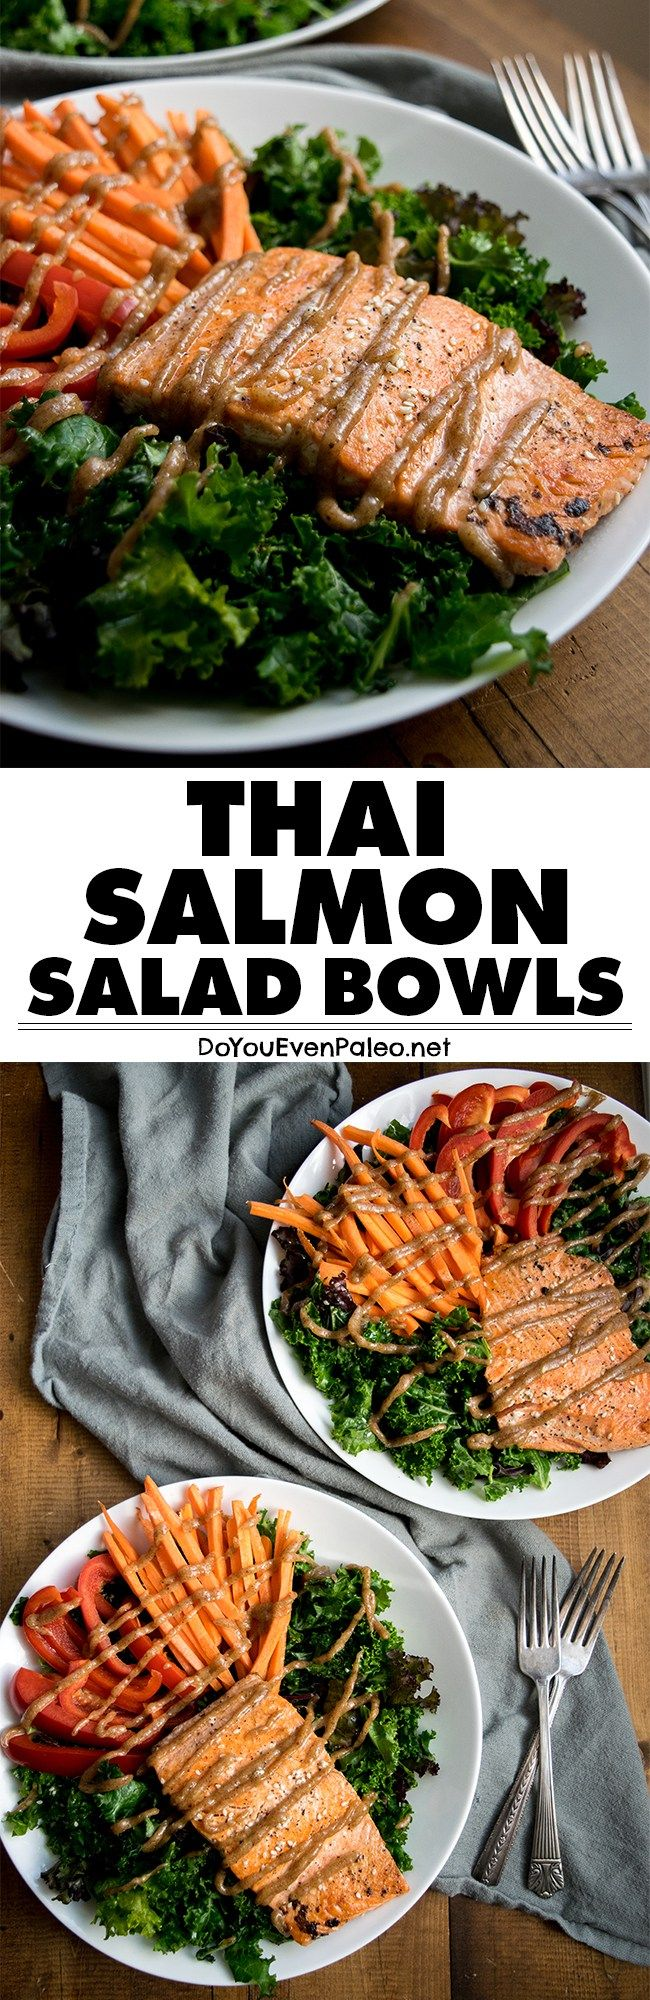 Thai Salmon Salad Bowls - a quick, easy, customizable weeknight meal or hearty lunch. Gluten free, paleo, and Whole30! | DoYouEvenPaleo.net